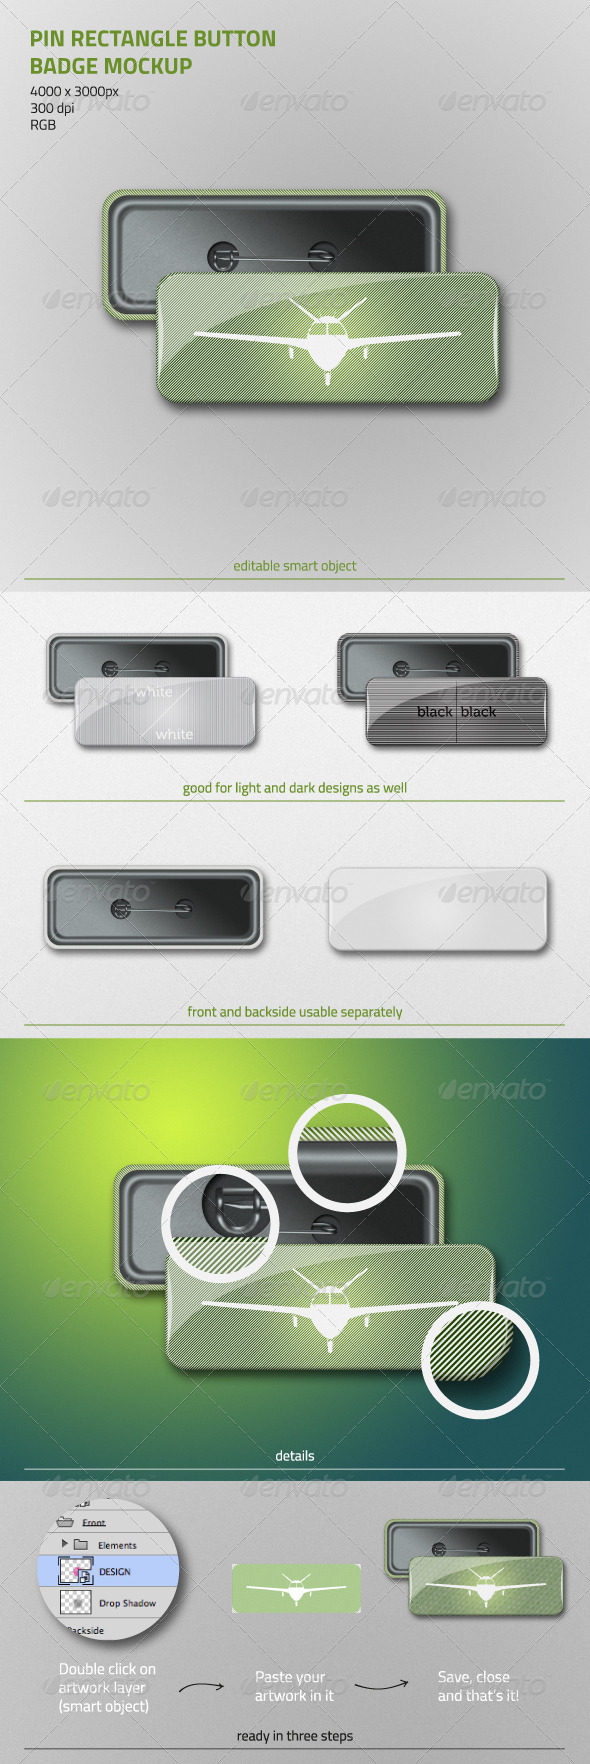 GraphicRiver Pin Rectangle Button Badge Mockup 6822572